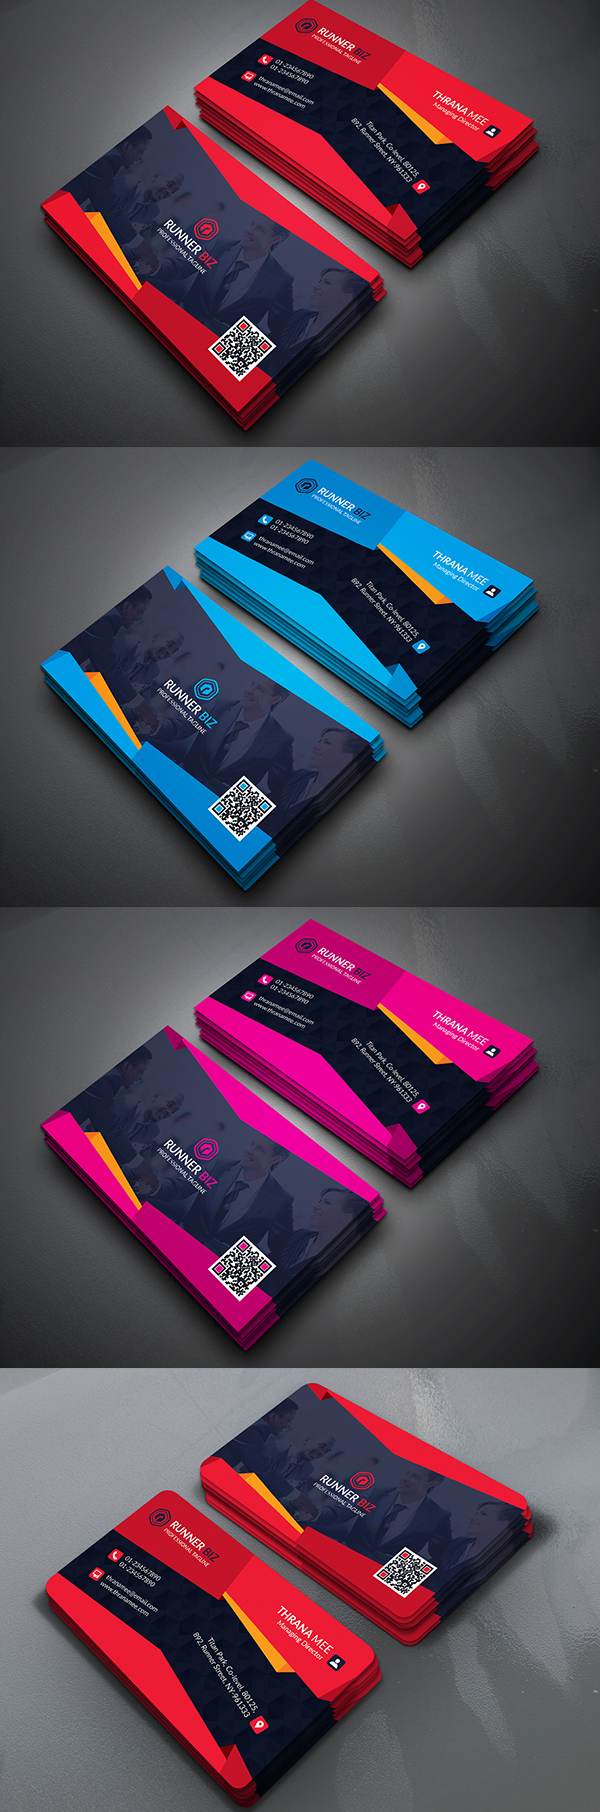 13 Business Card Design